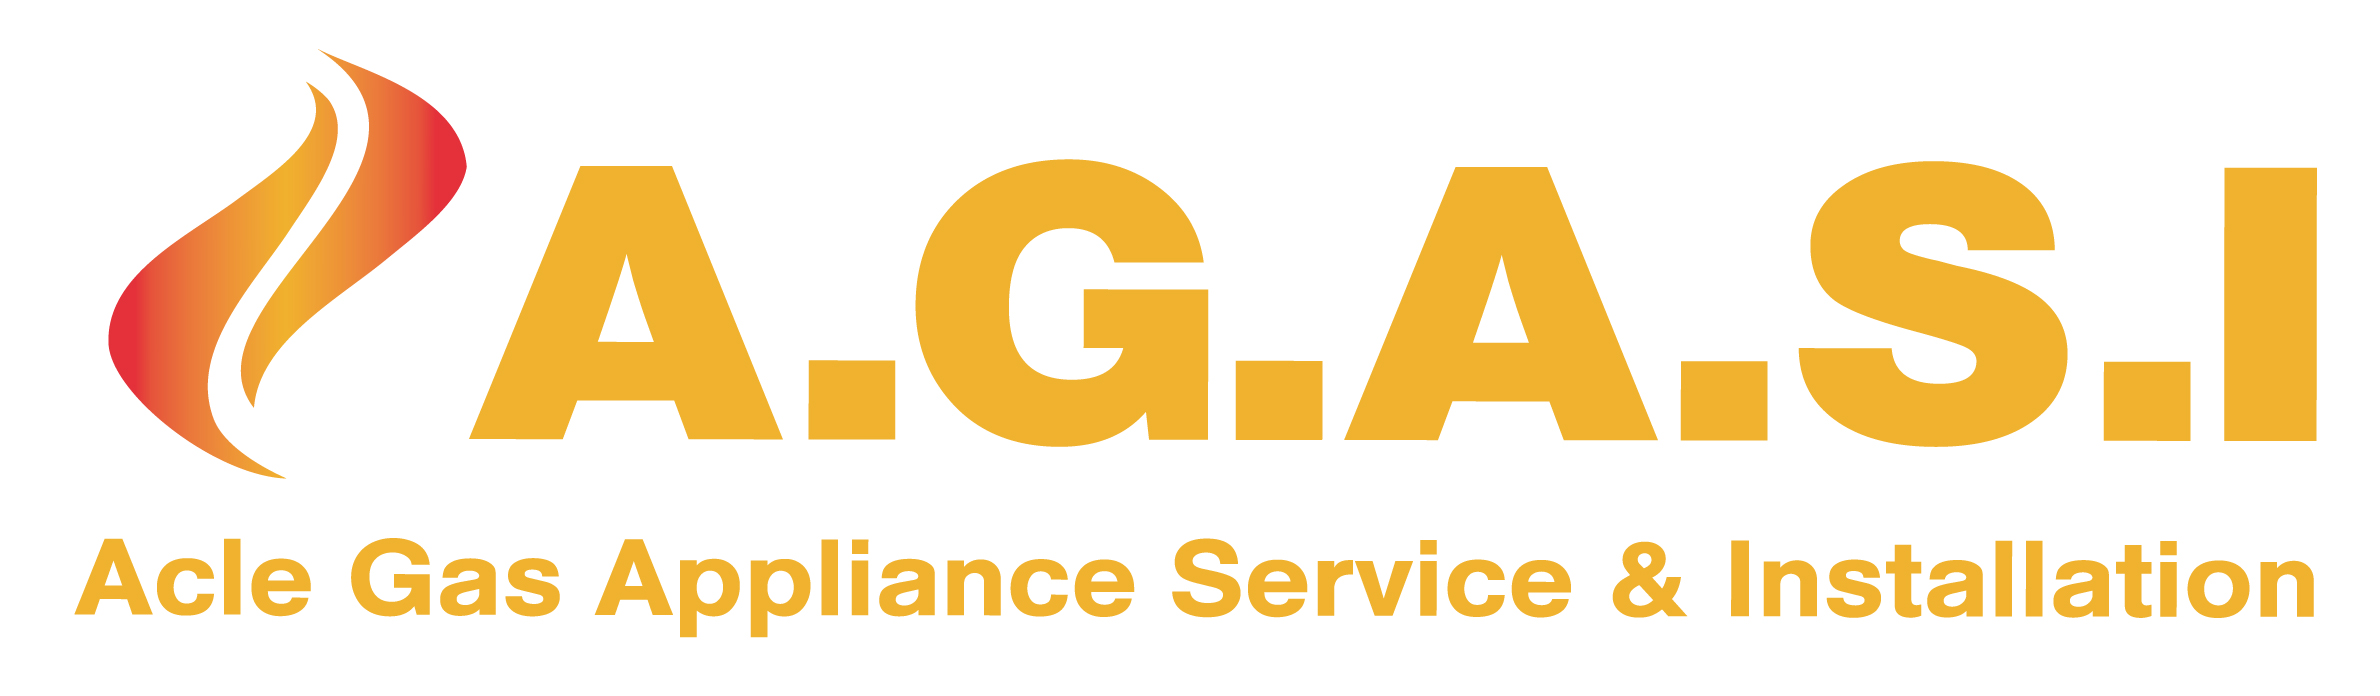 Acle Gas Appliance Service & Installation Verified Logo